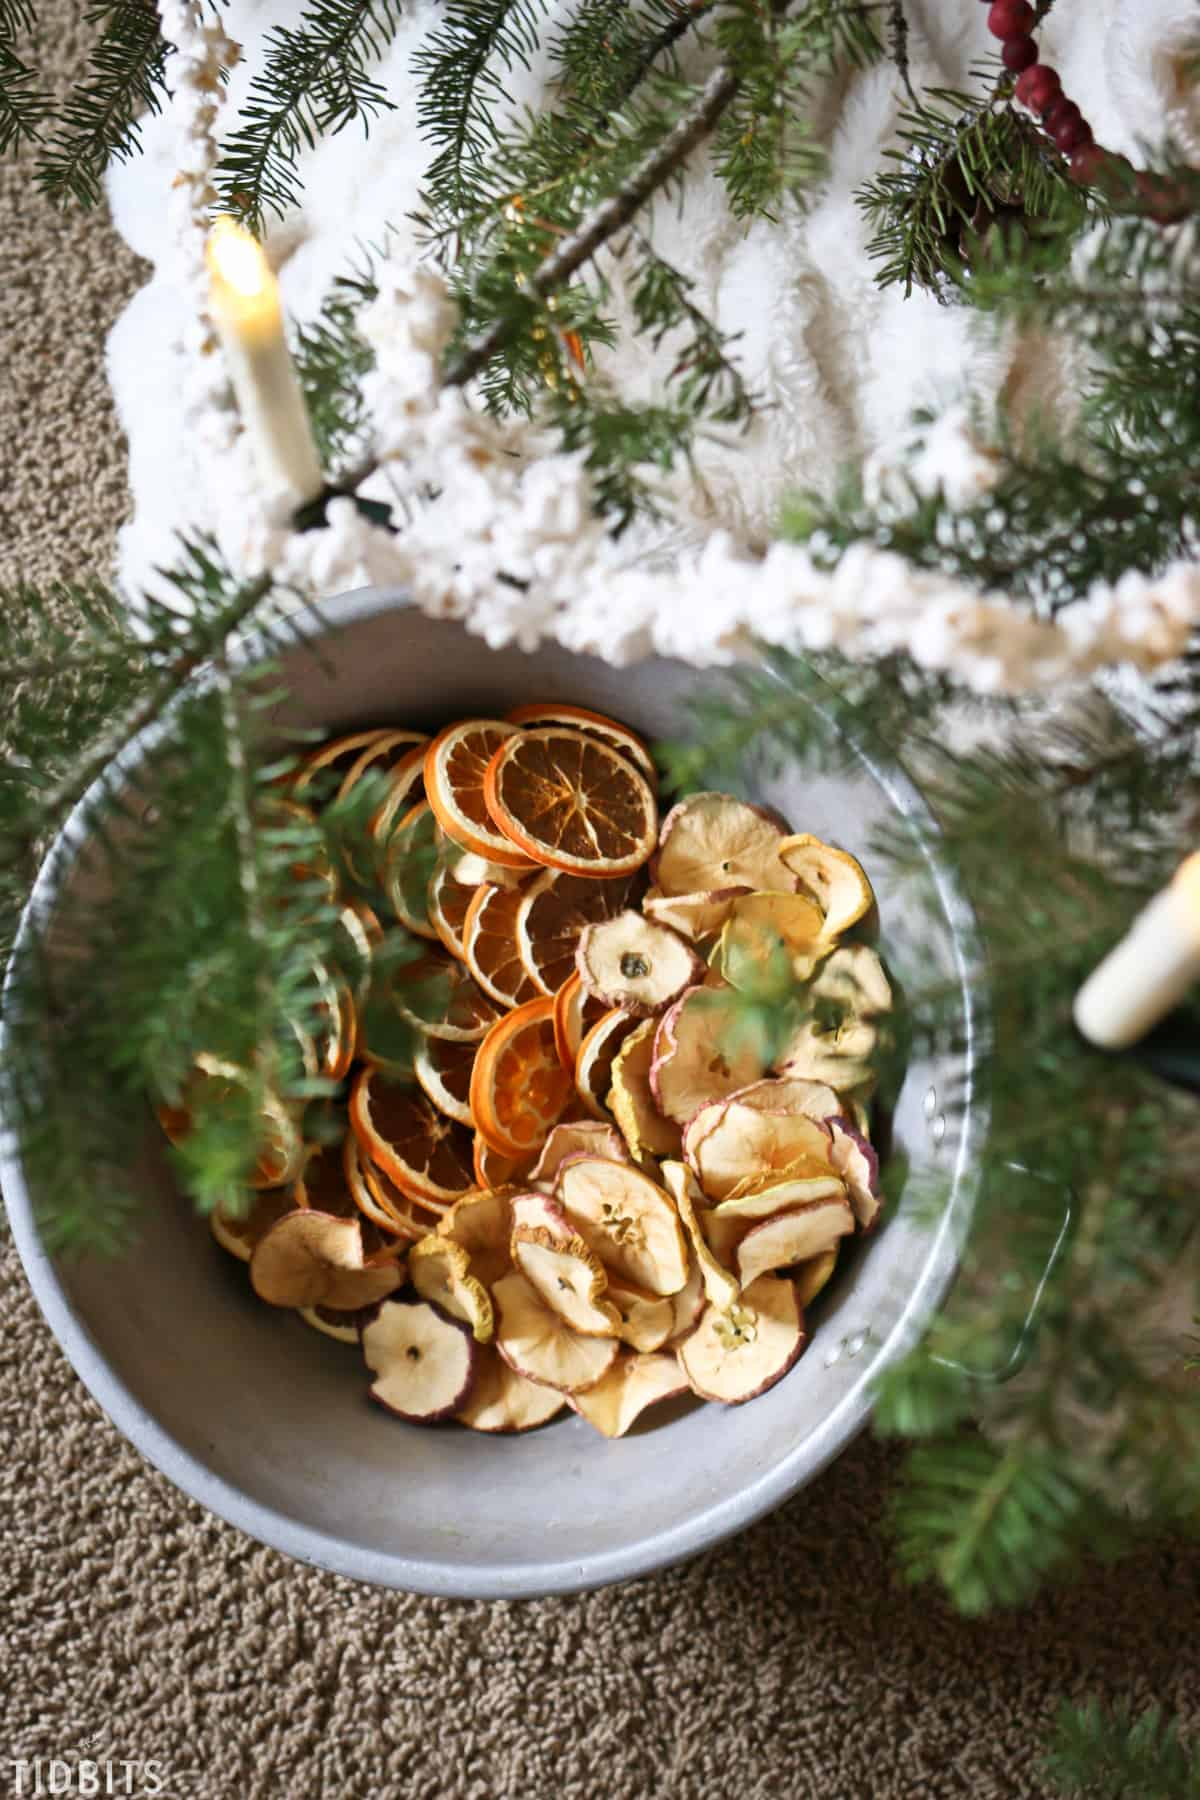 A bowl of natural orange and apple decorations being hung on a Christmas tree.